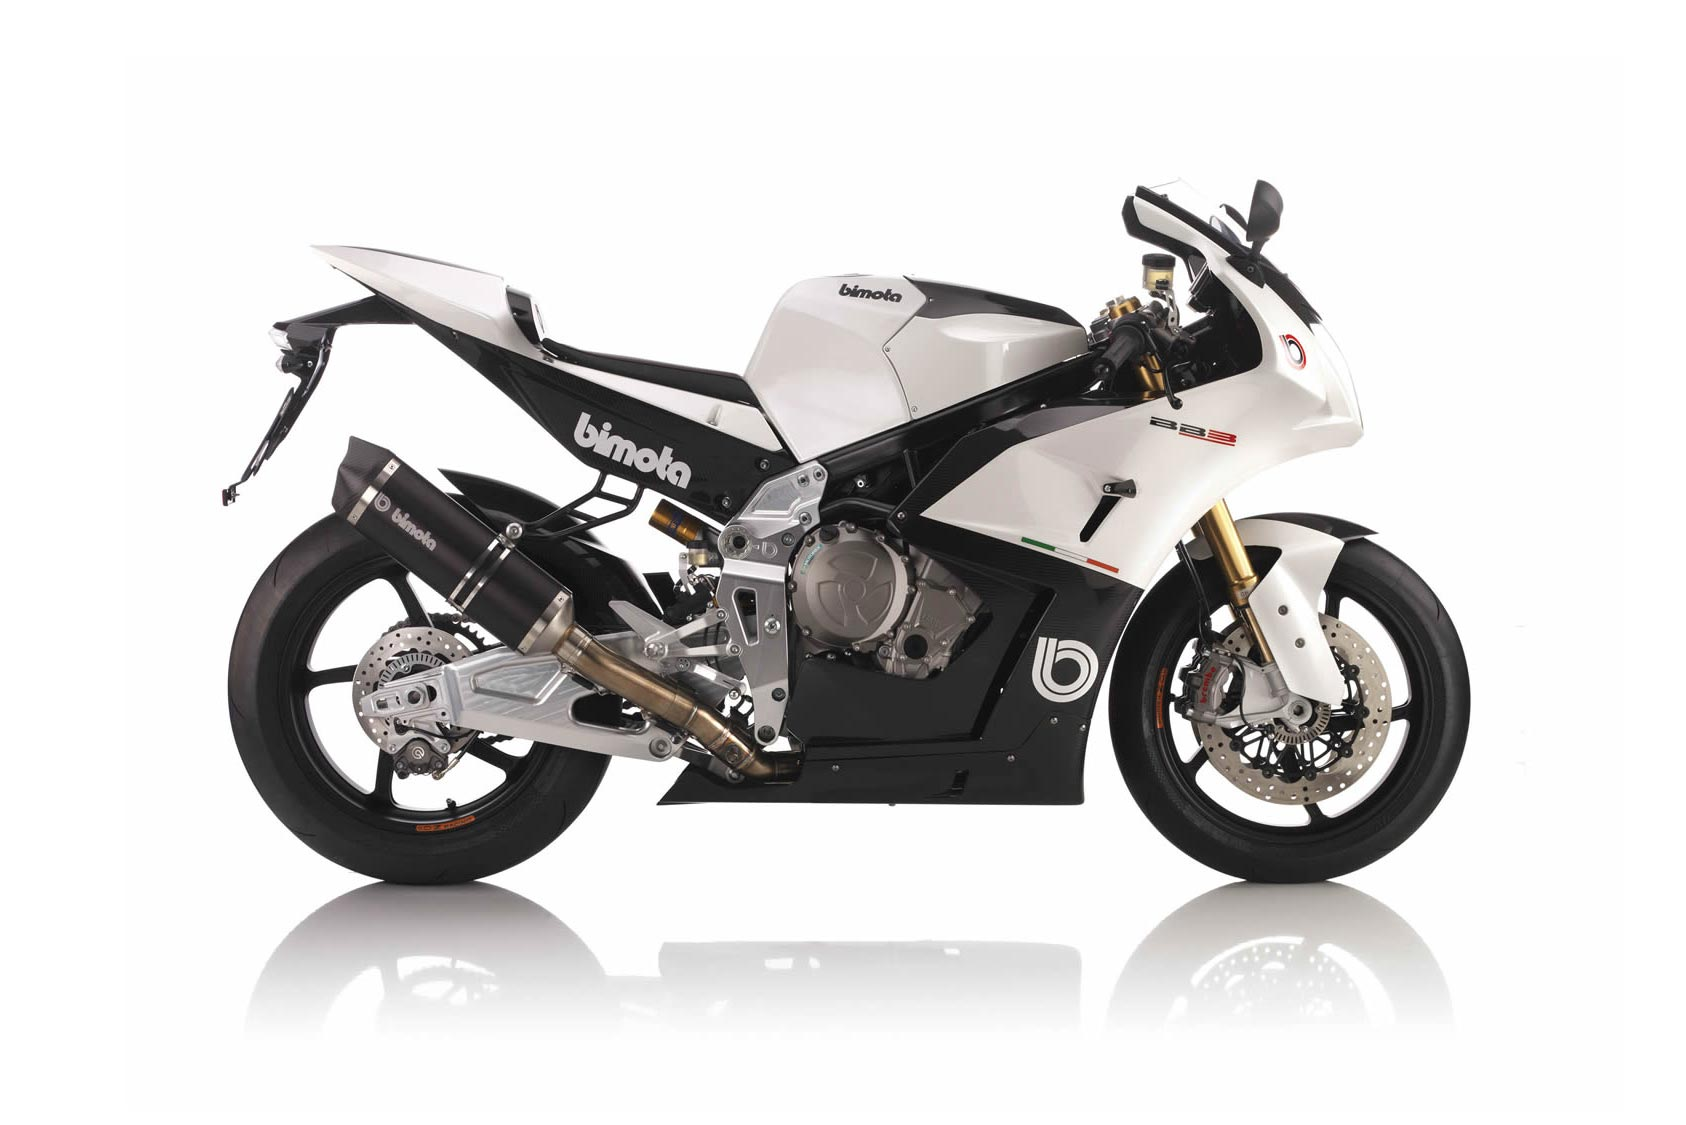 Build your own bimota bb3 kits now available bimota has a history of providing do it yourself kits to customers allowing racers and owners the ability to use their own engines with bimota chassis solutioingenieria Images